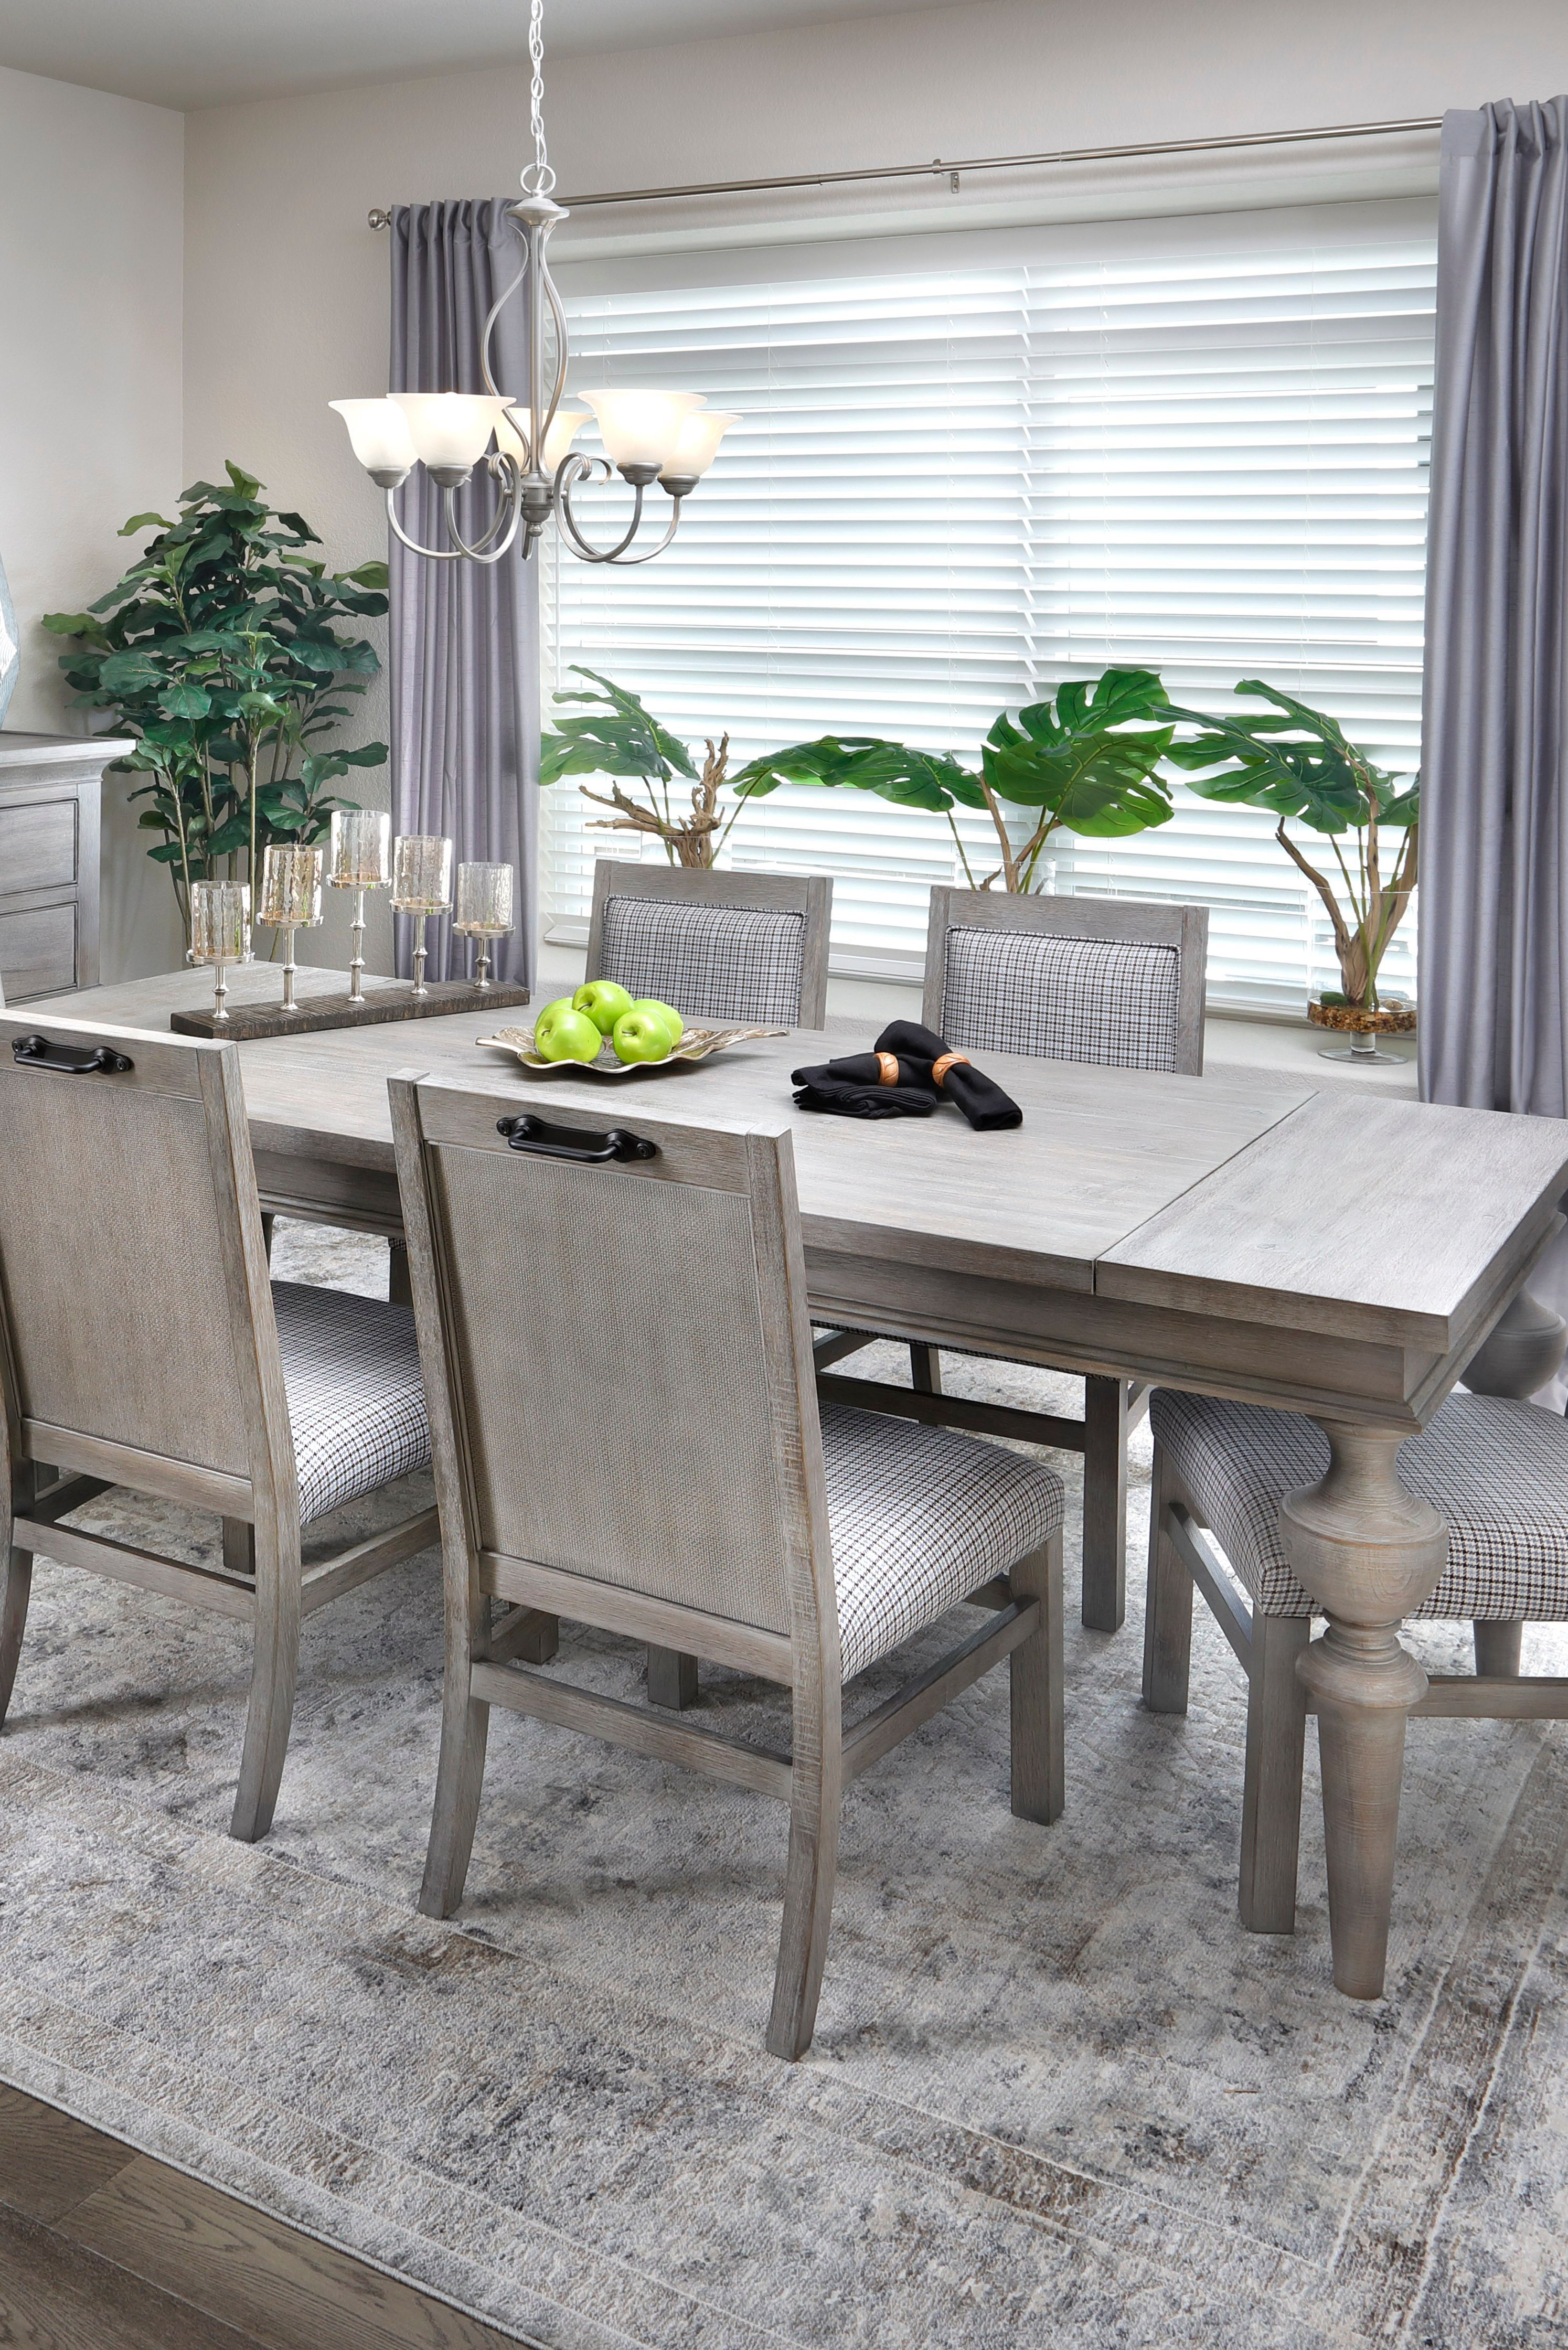 Rock Island 5 Pc Dining Room Set With Parsons Chairs In 2020 Large Dining Room Table Large Dining Room Grey Dining Room